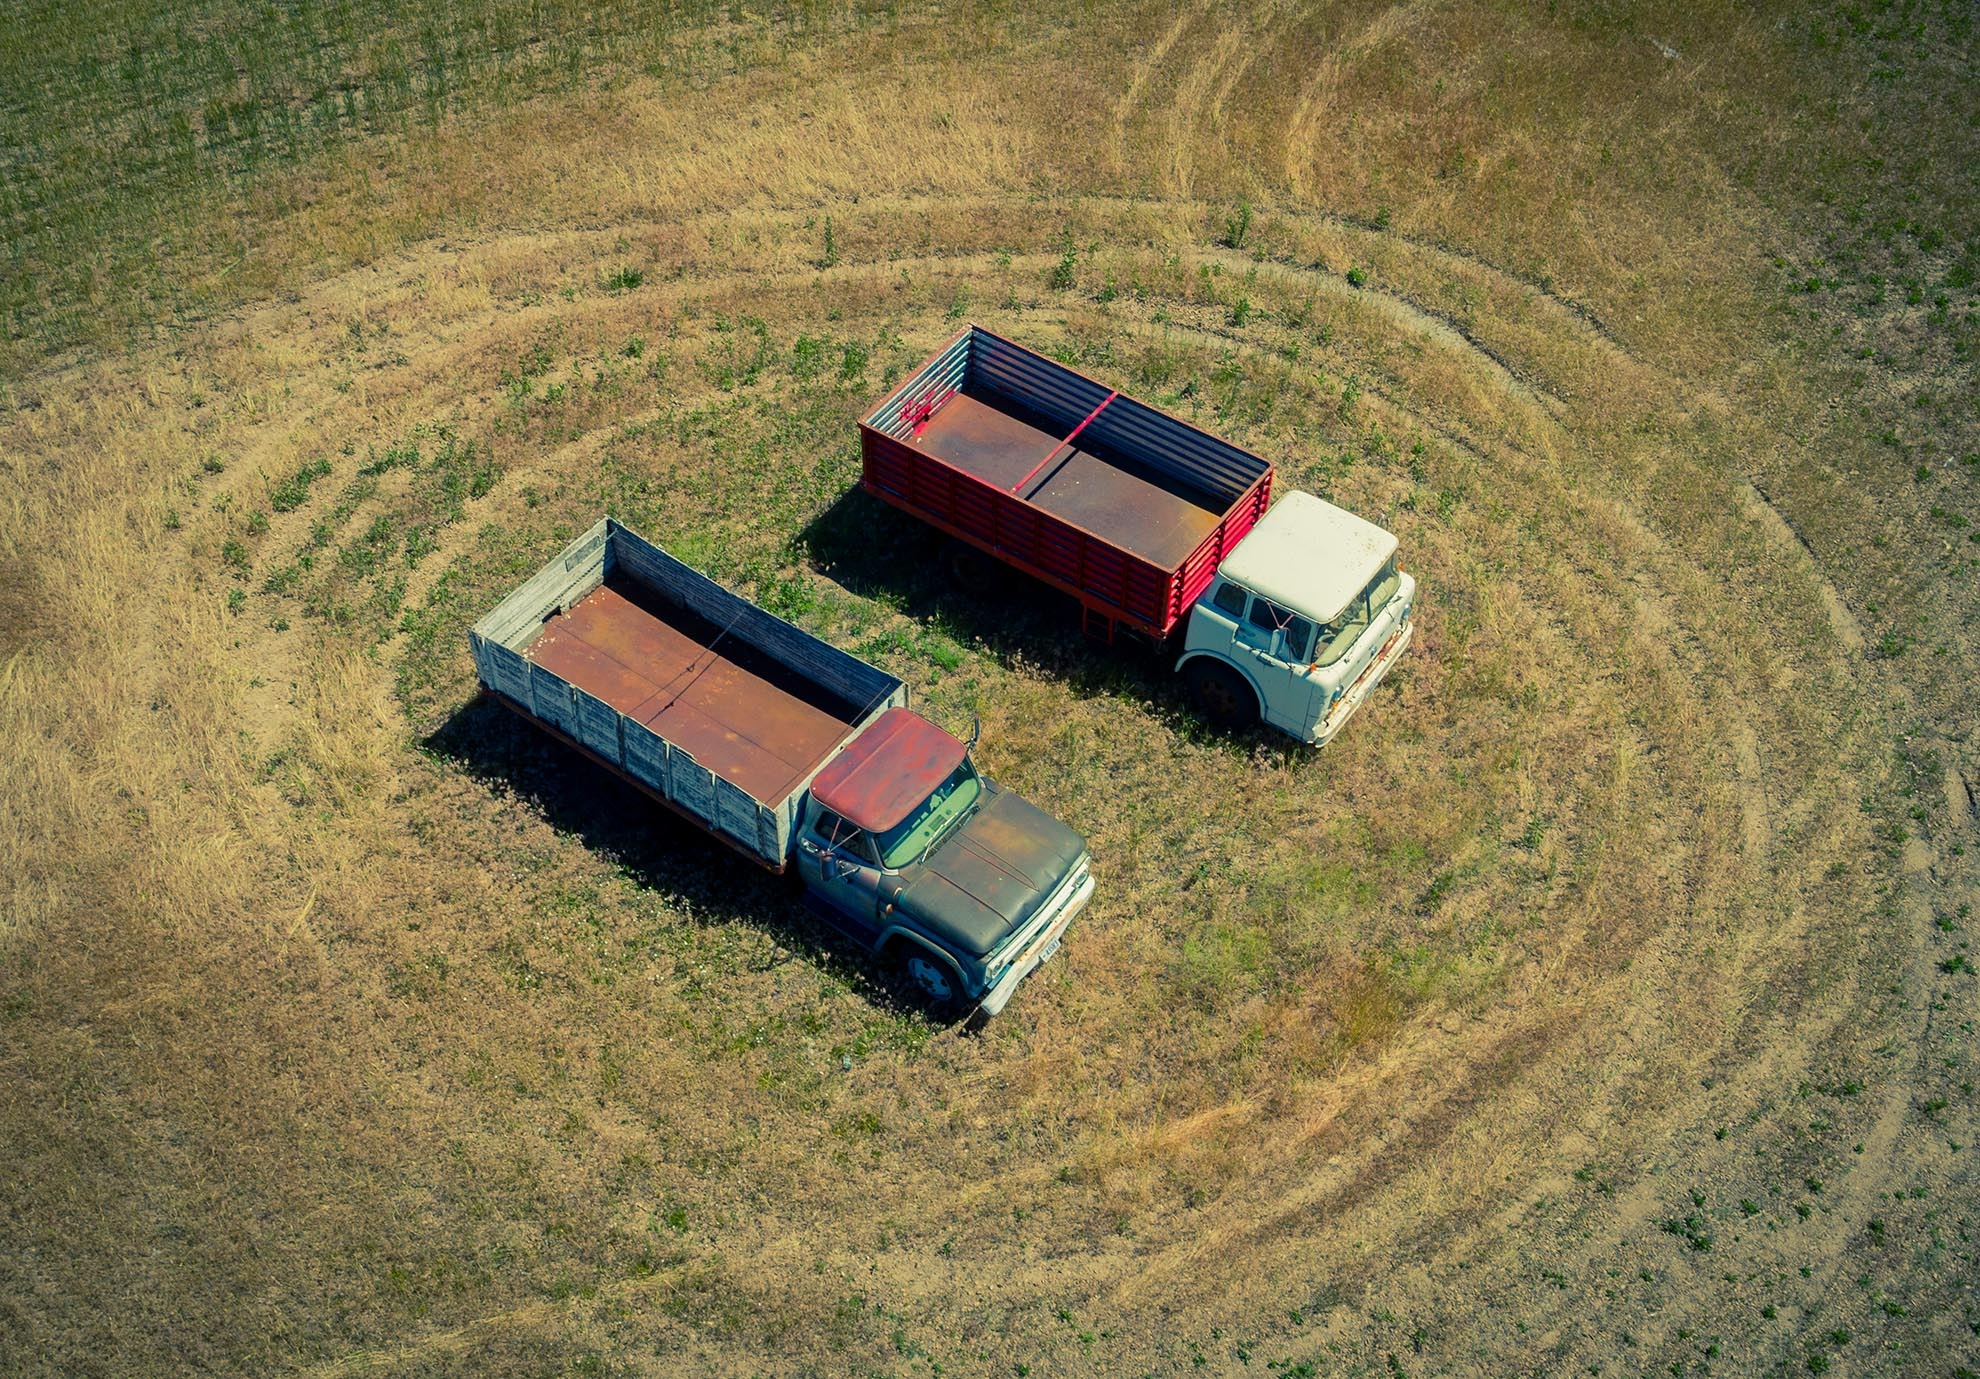 Drone Photograph of Farm Trucks in Utah Field